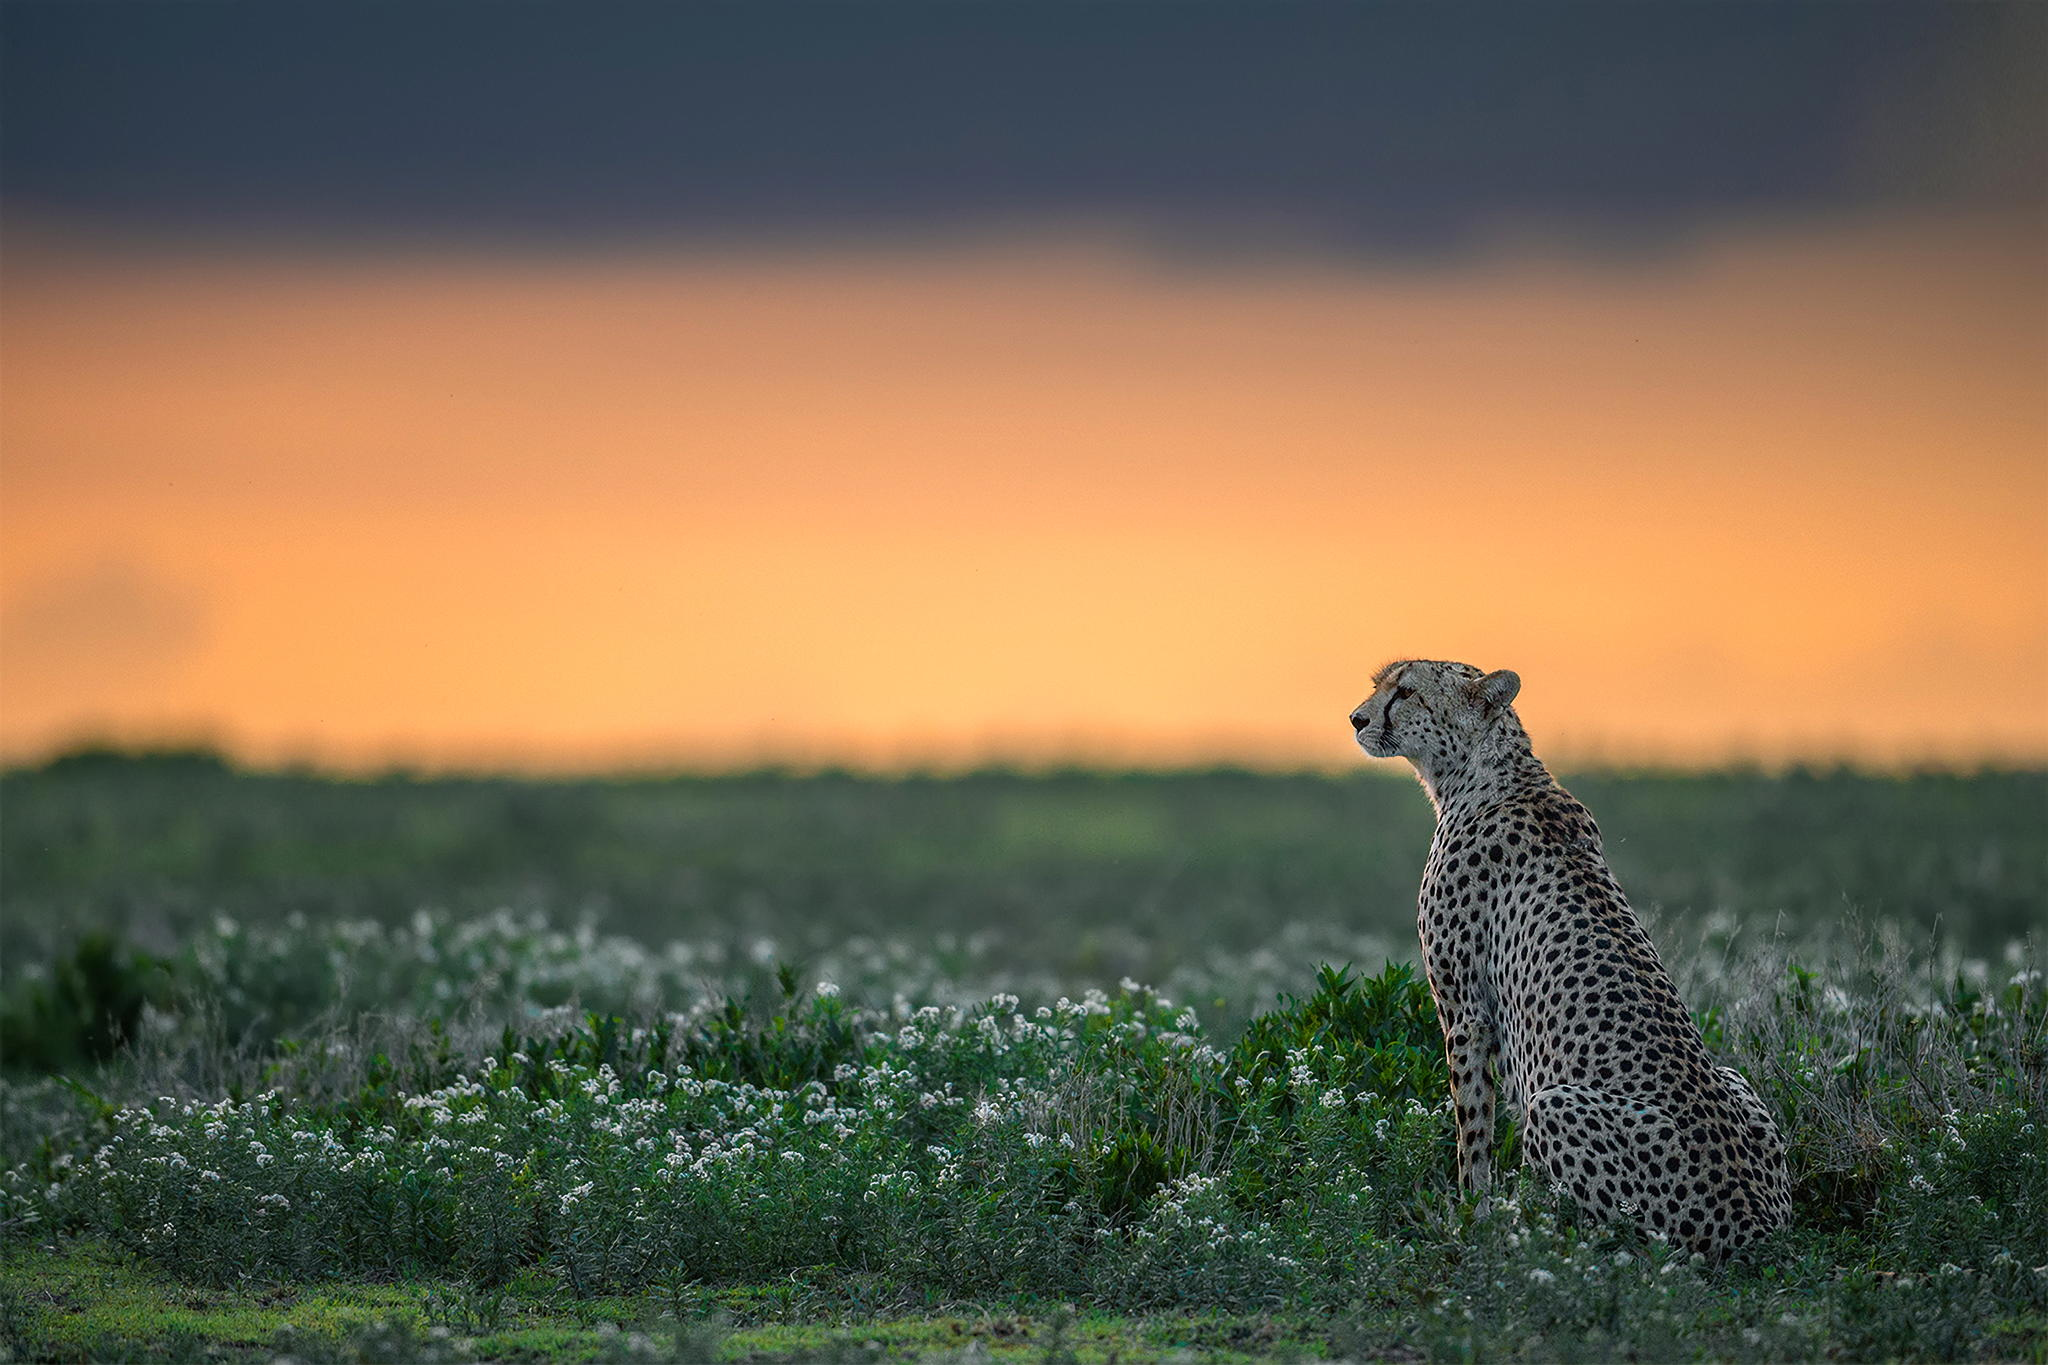 by Marc MOL